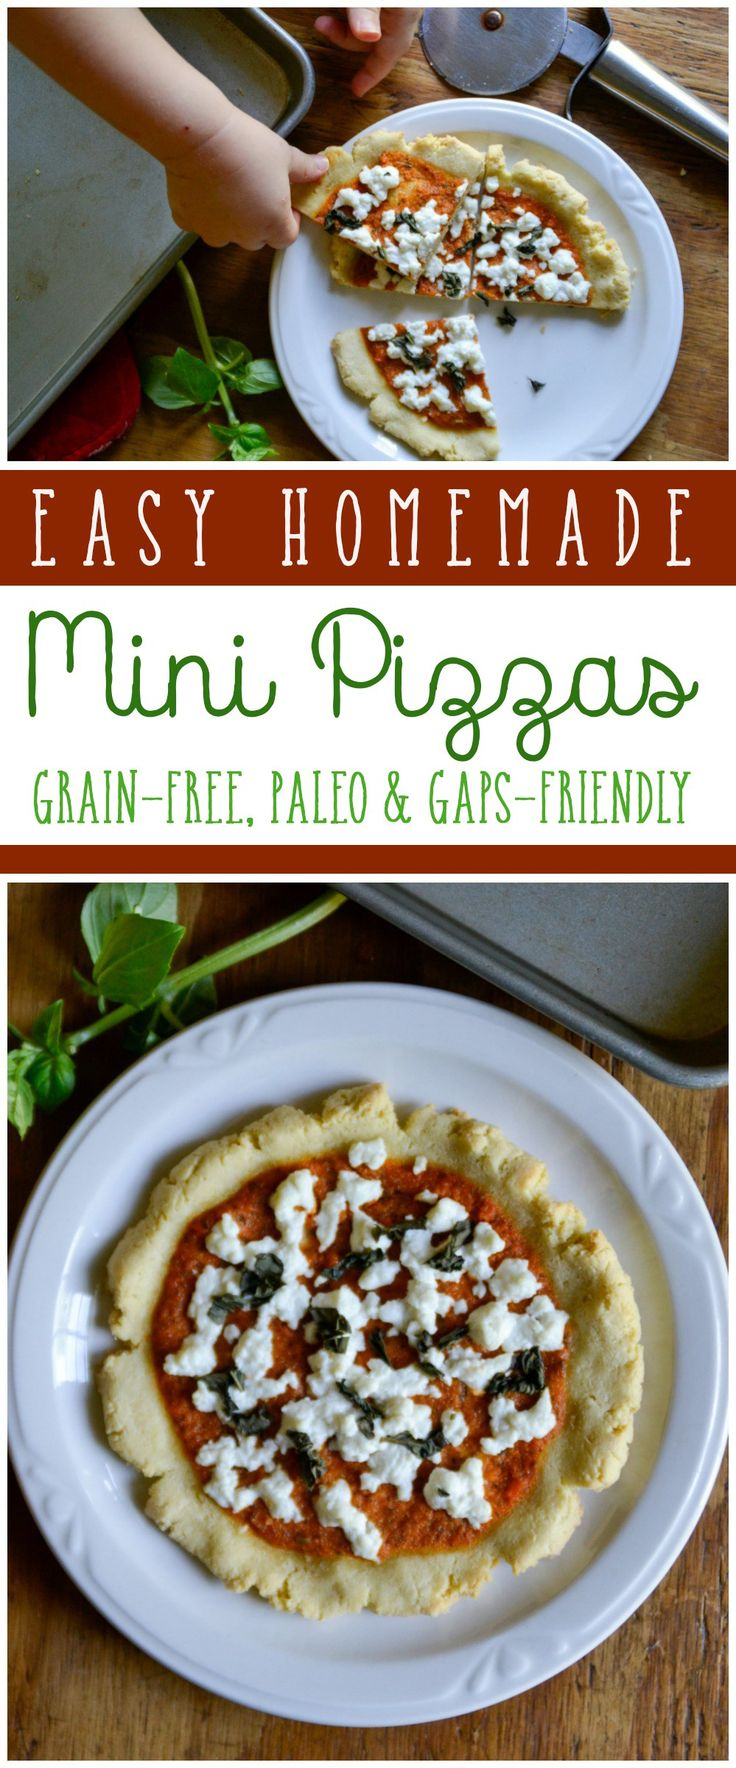 Need a quick and simple swap for regular pizzas? These easy homemade Grain-Free Mini Pizzas are for you. They're paleo and GAPS-friendly.